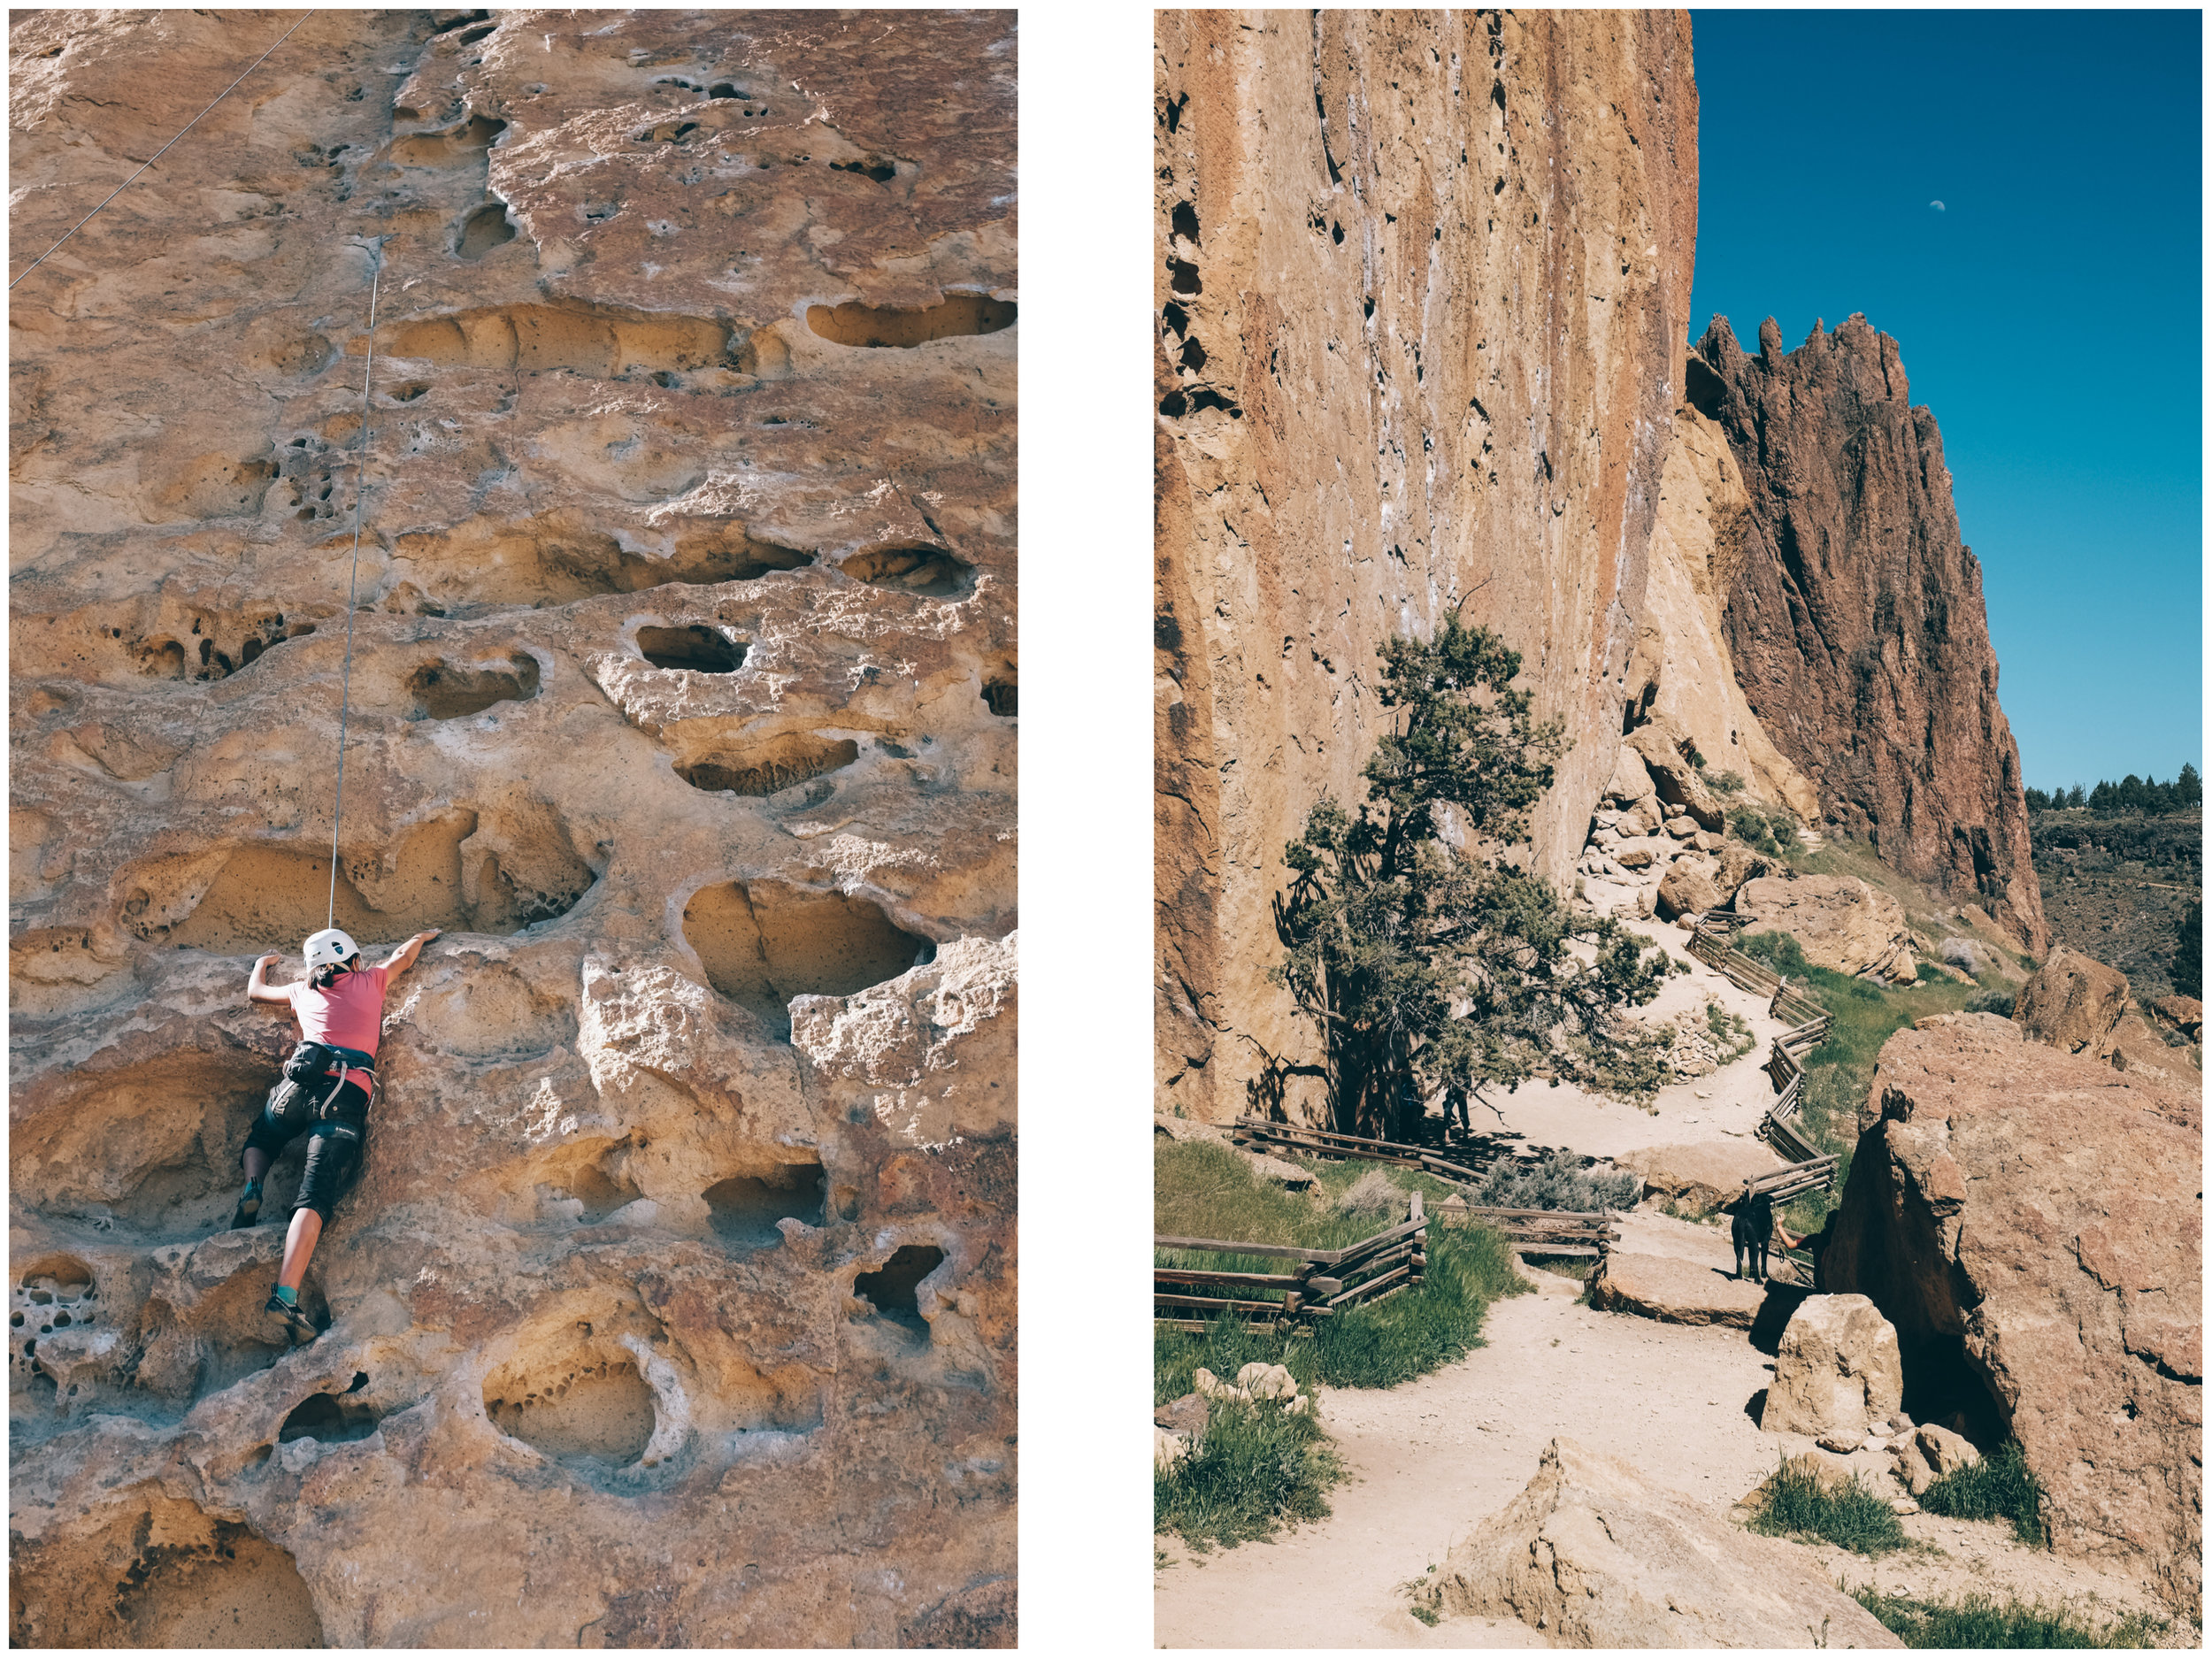 Smith Rock SP totally blew our mind. We were taken aback by how thoughtful and well managed the place is. Twenty years ago, it was pretty much only visited by climbers, in fact the bridge didn't exist and you had to do a tyrolean across the Crooked River (prior to that you could drive and camp beneath The Monument.) The trail system is great, sustainable and enviro and people friendly. The climbing scene and vibe is great and everyone, climbers and non-climbers, is very friendly. On the left, Mathilde climbing 5 gallon buckets, one of the most popular 5.8s in the park.